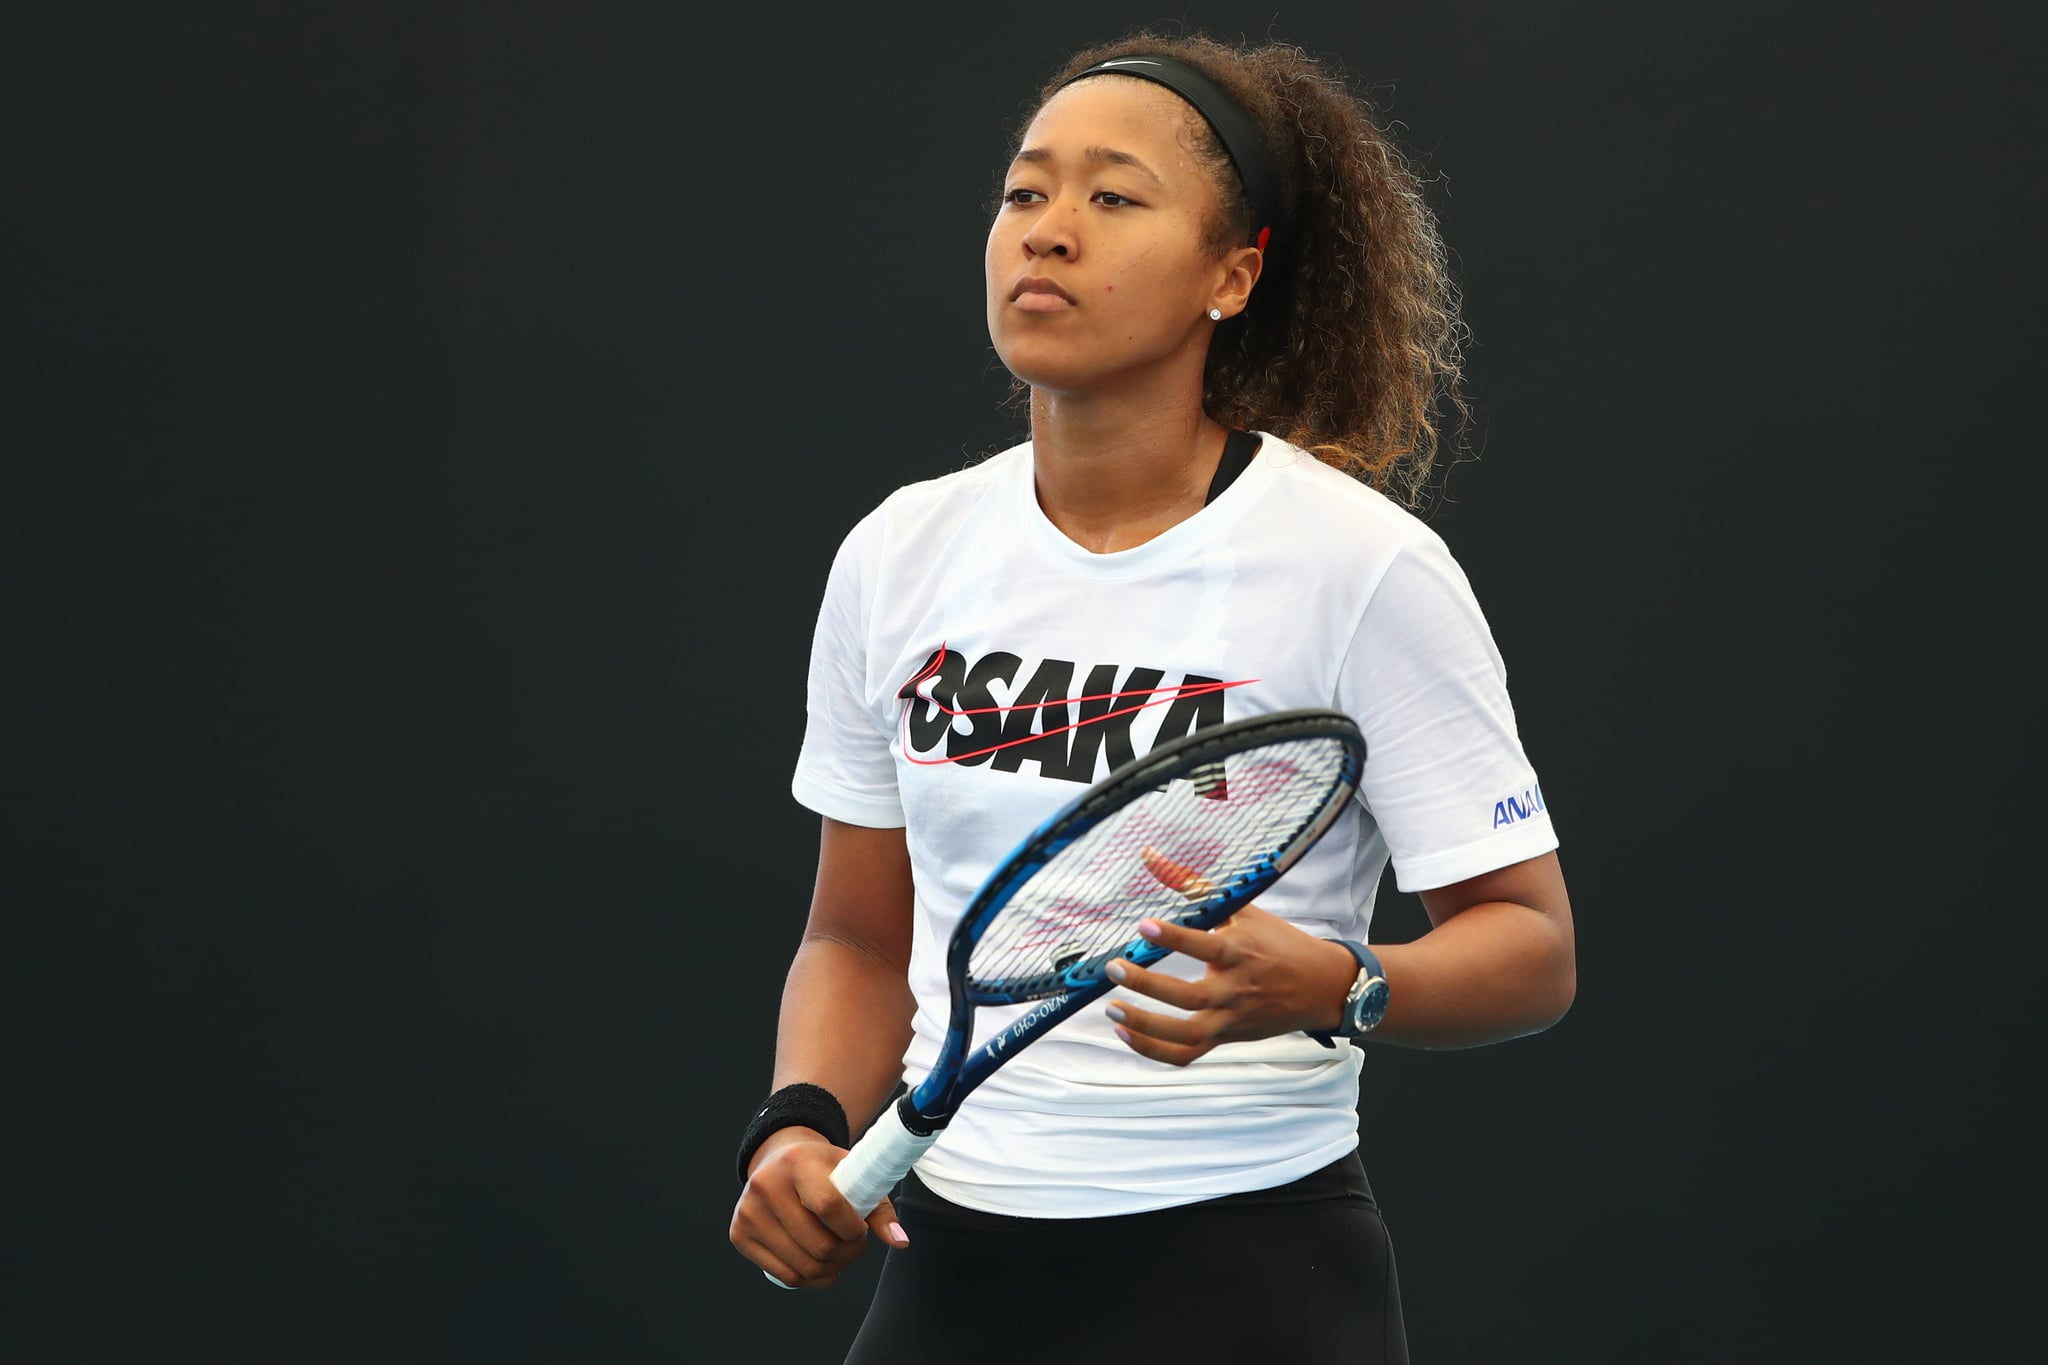 BRISBANE, AUSTRALIA - JANUARY 03: Naomi Osaka of Japan during a practice session ahead of the 2020 Brisbane International at Pat Rafter Arena on January 03, 2020 in Brisbane, Australia. (Photo by Chris Hyde/Getty Images)